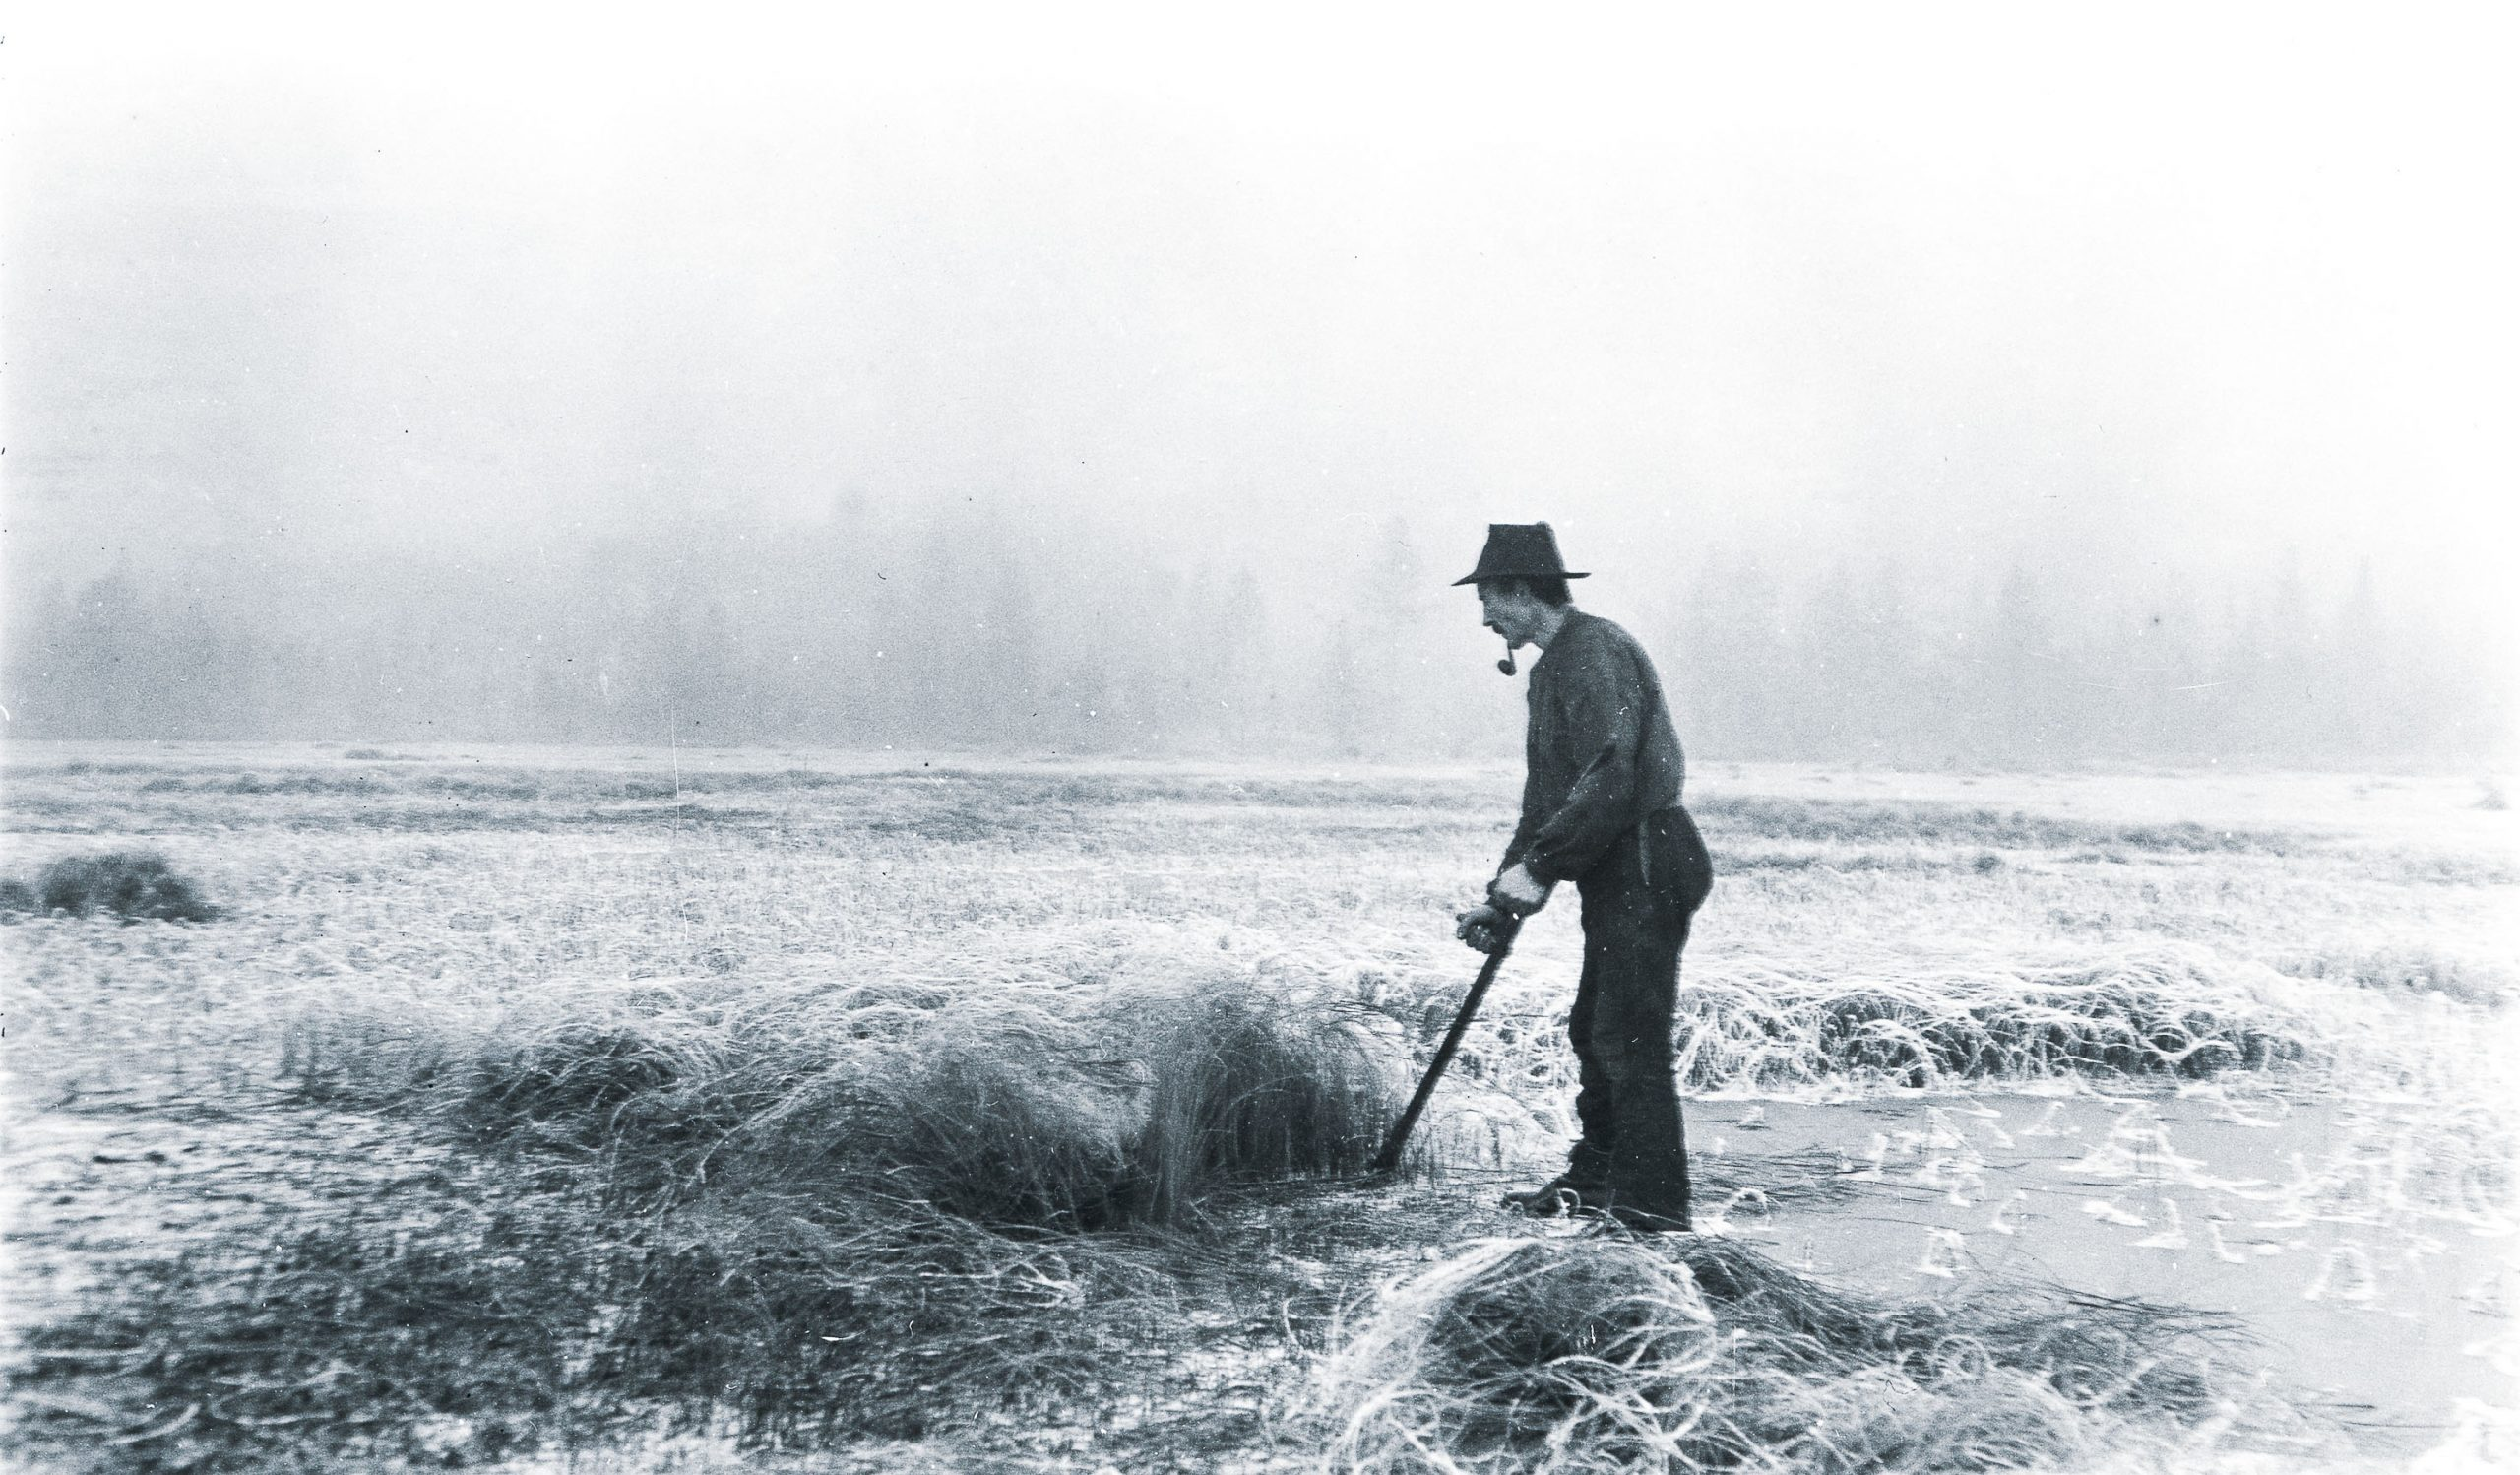 Homestead | cutting marsh grass on the frozen lake | Norway